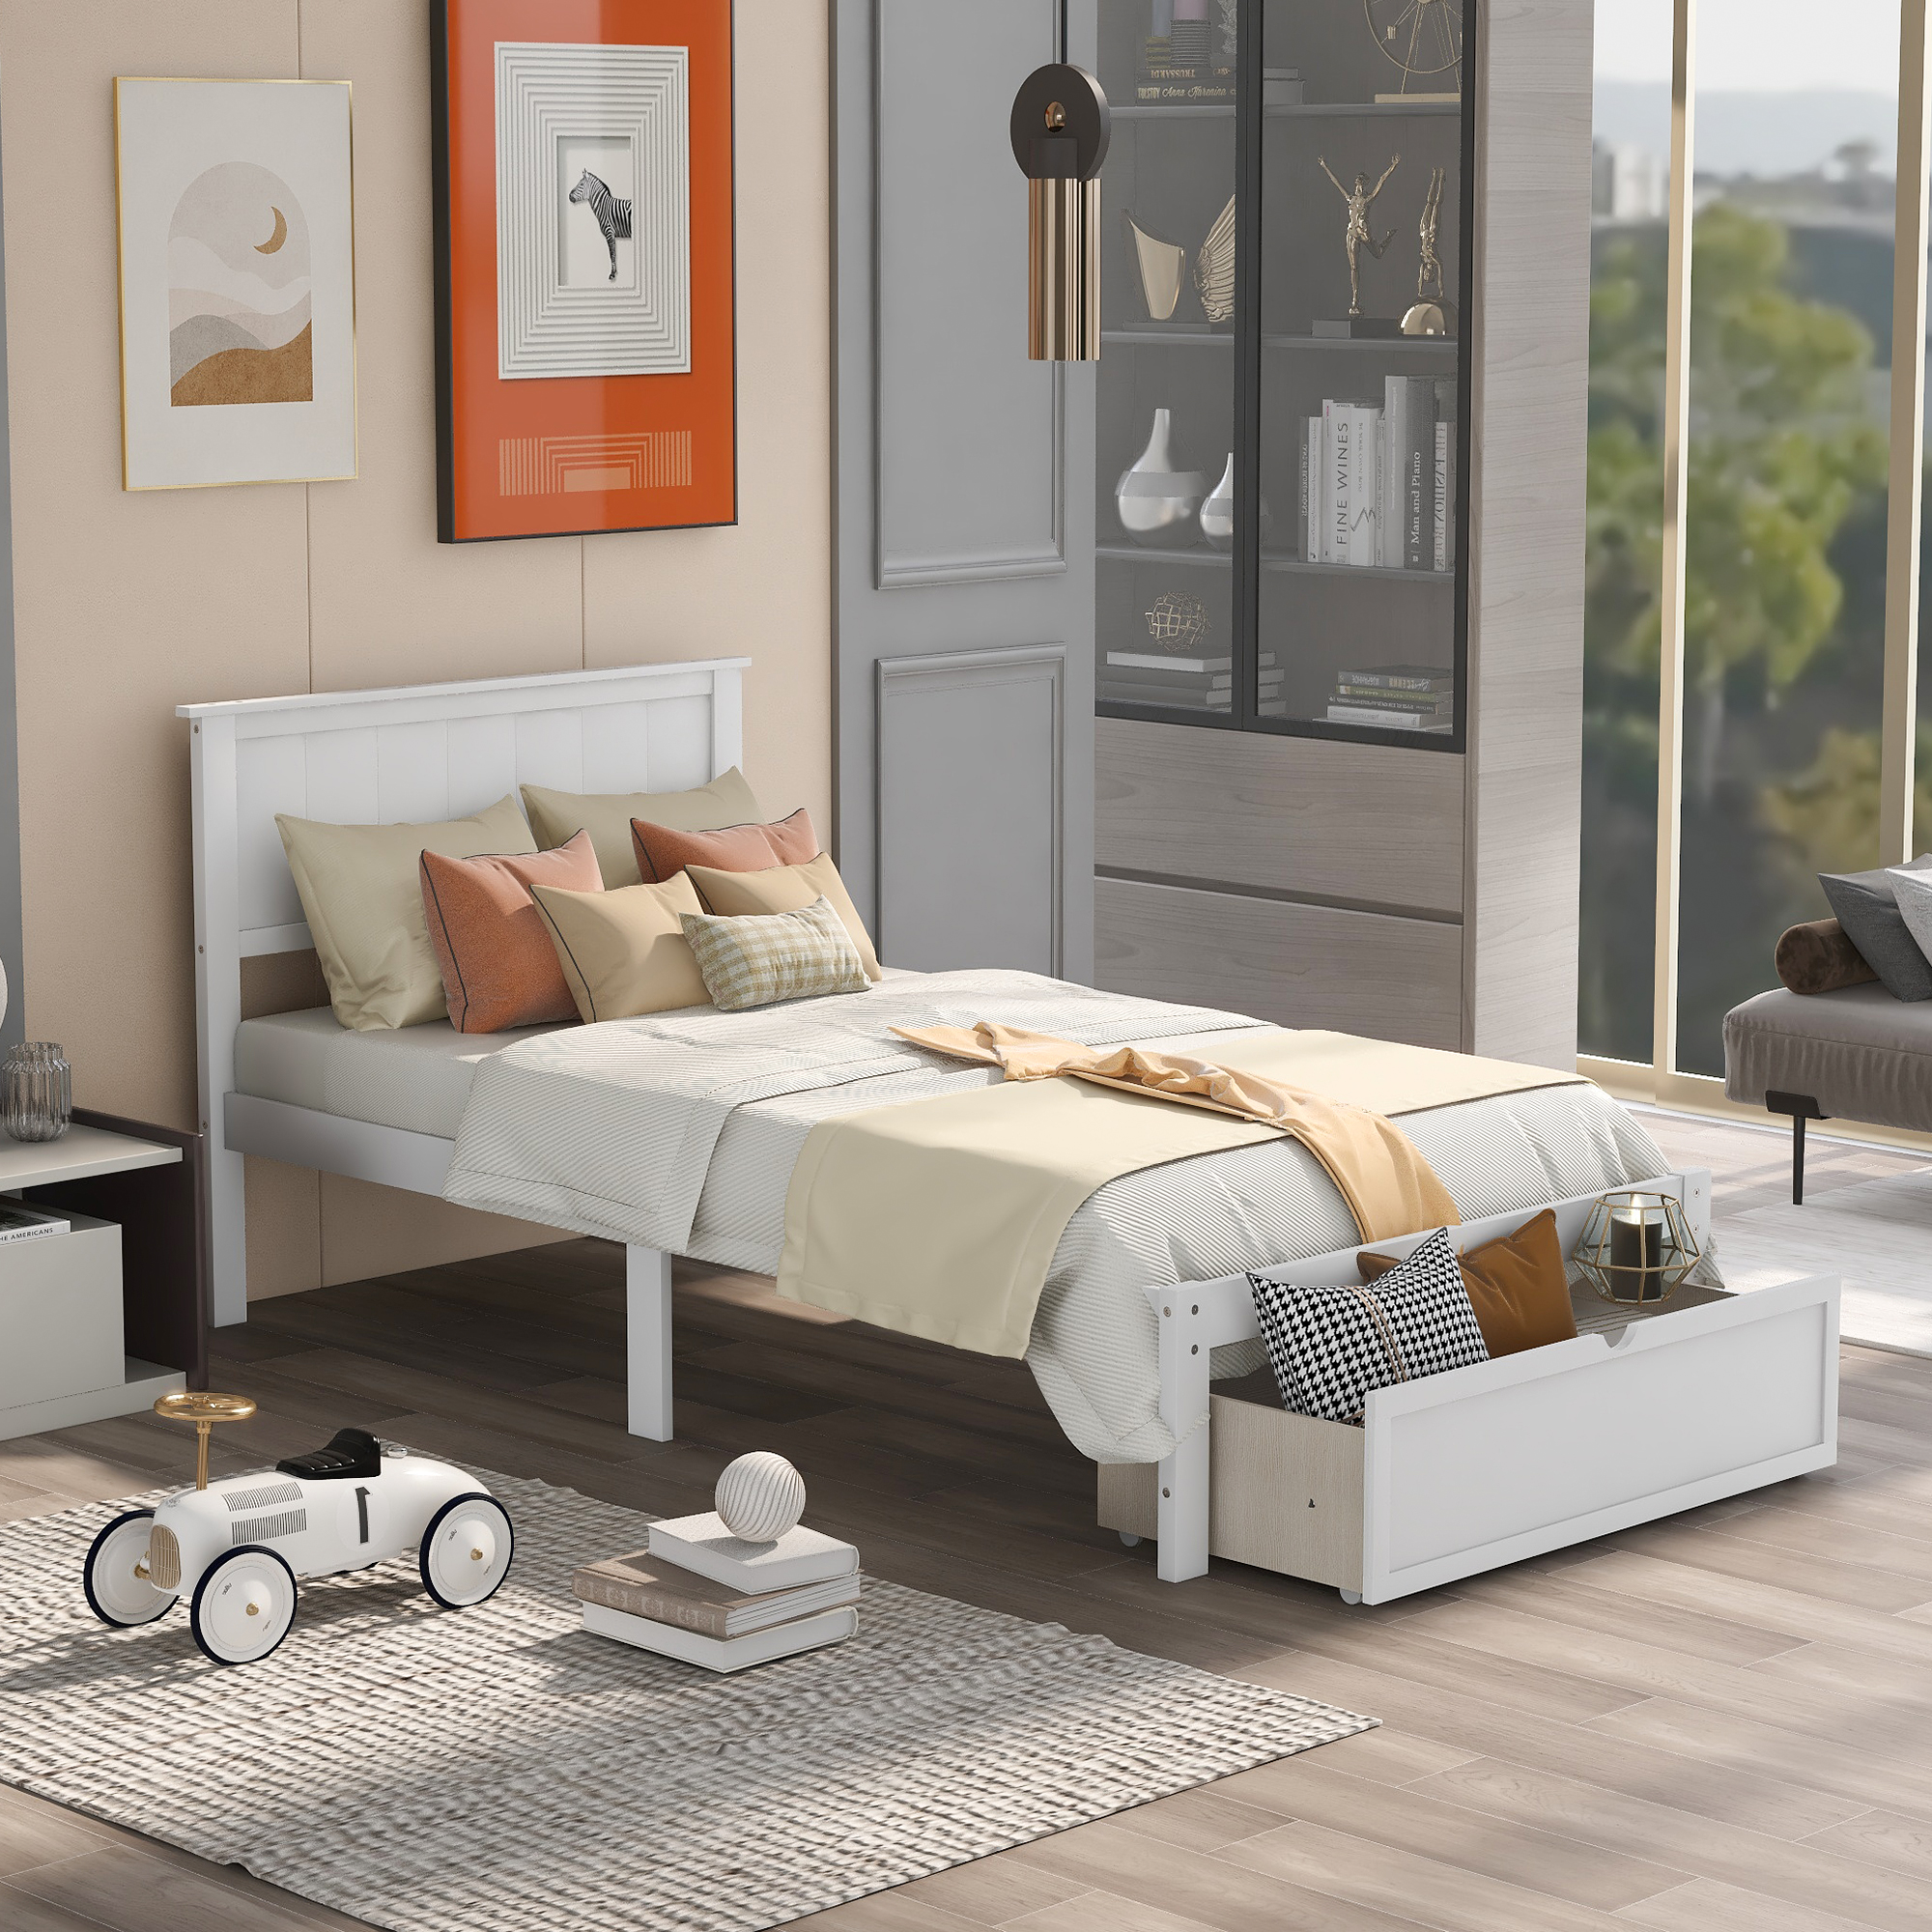 [US Direct] Twin Size Platform Bed with Under-bed Drawer, Gray